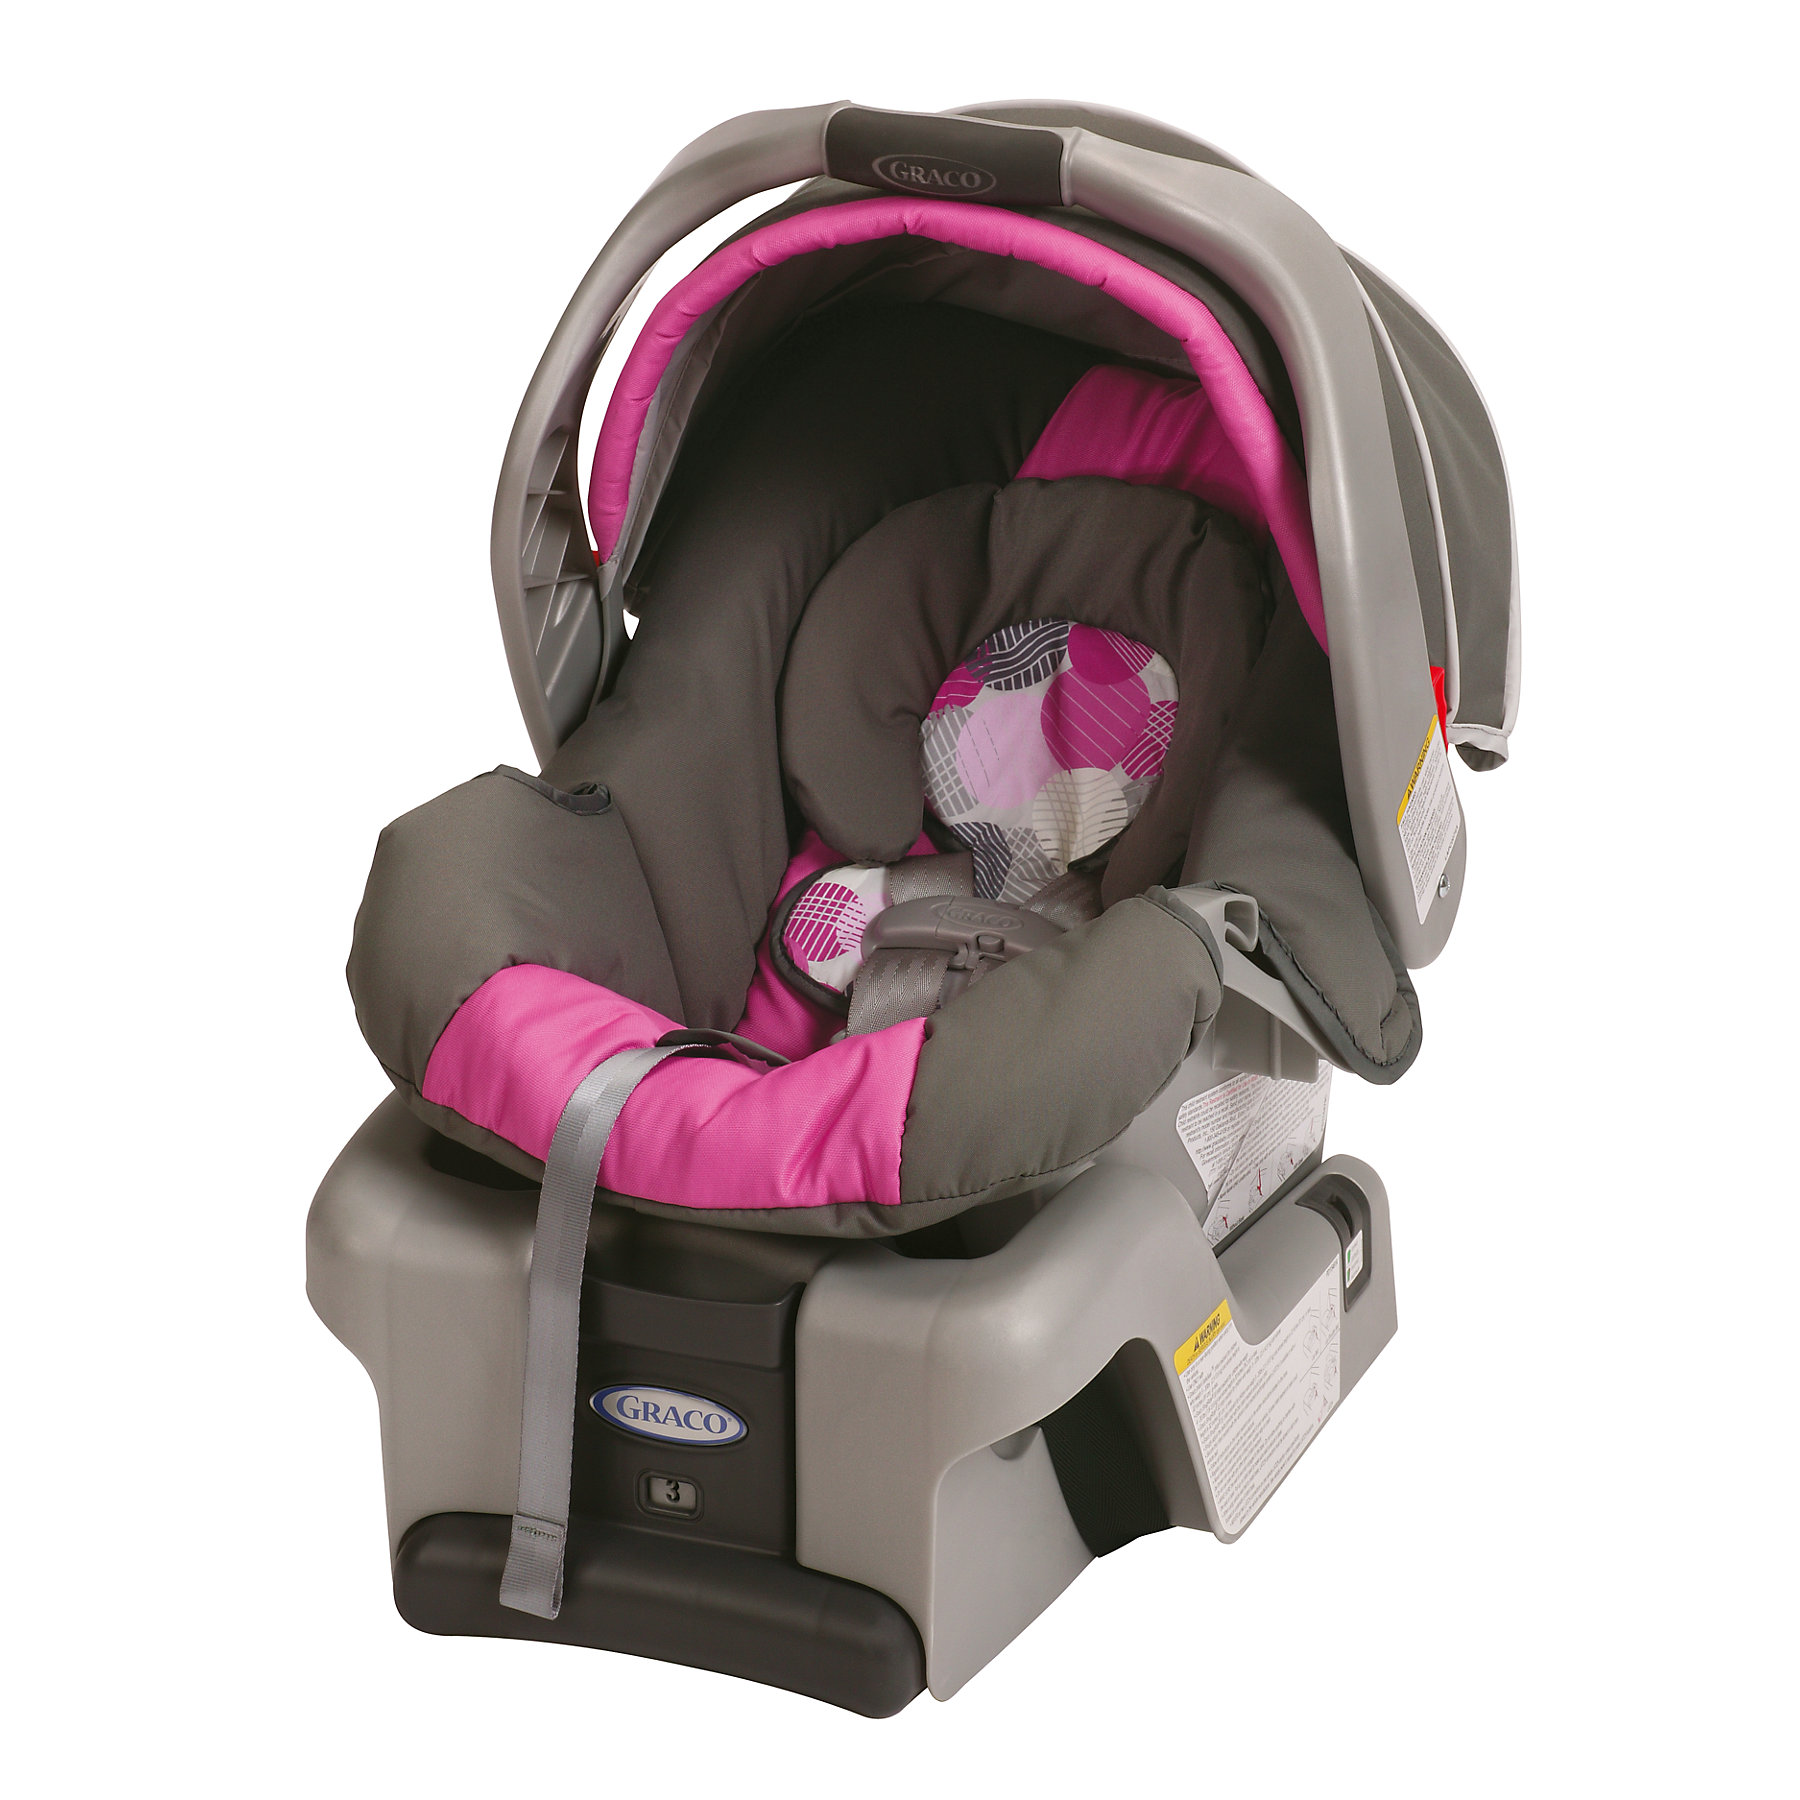 Graco Childrens Products Graco SnugRide 30 Infant Car Seat in Lexi at Sears.com